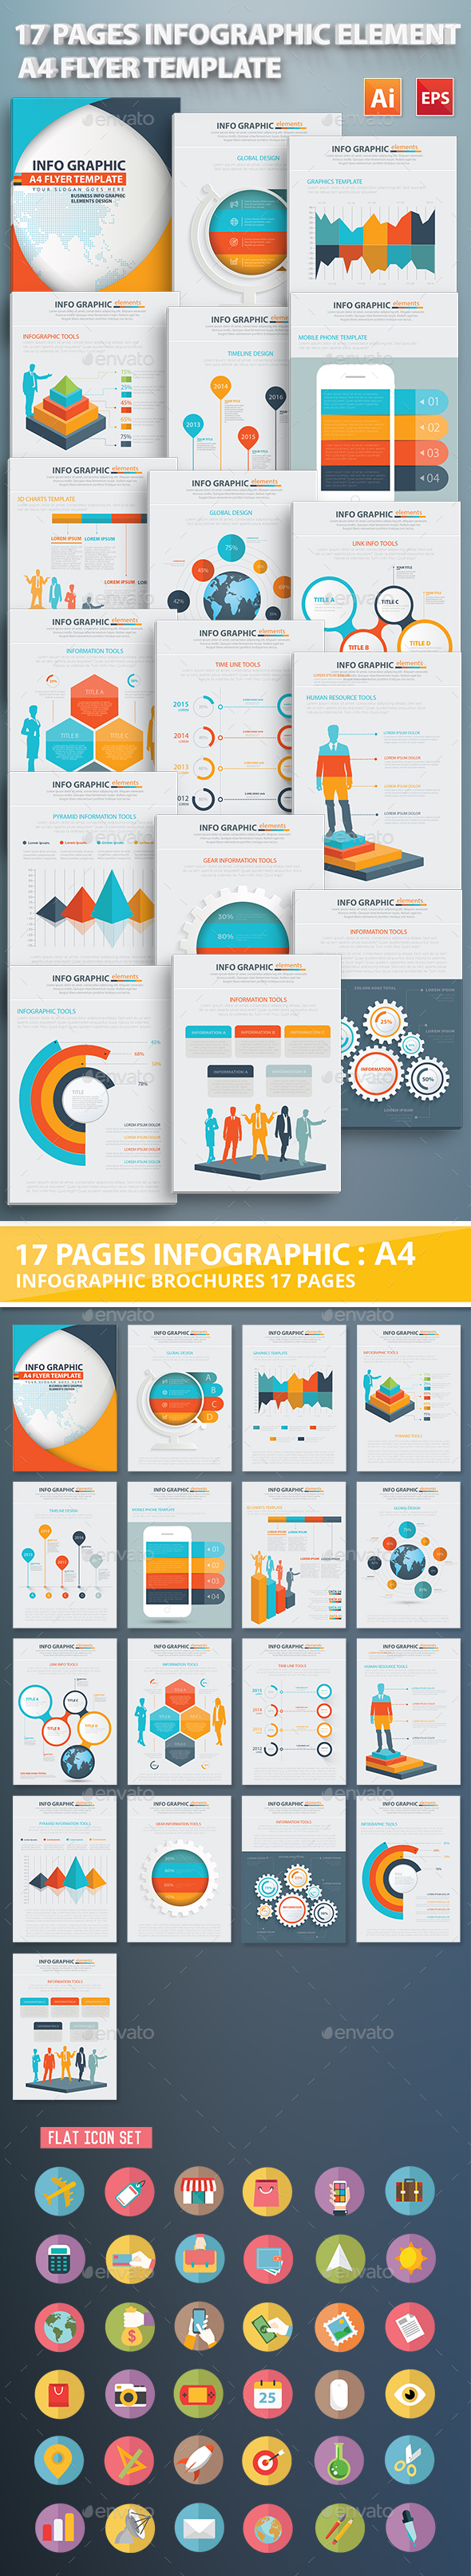 17 Pages Info Graphic Elements Design